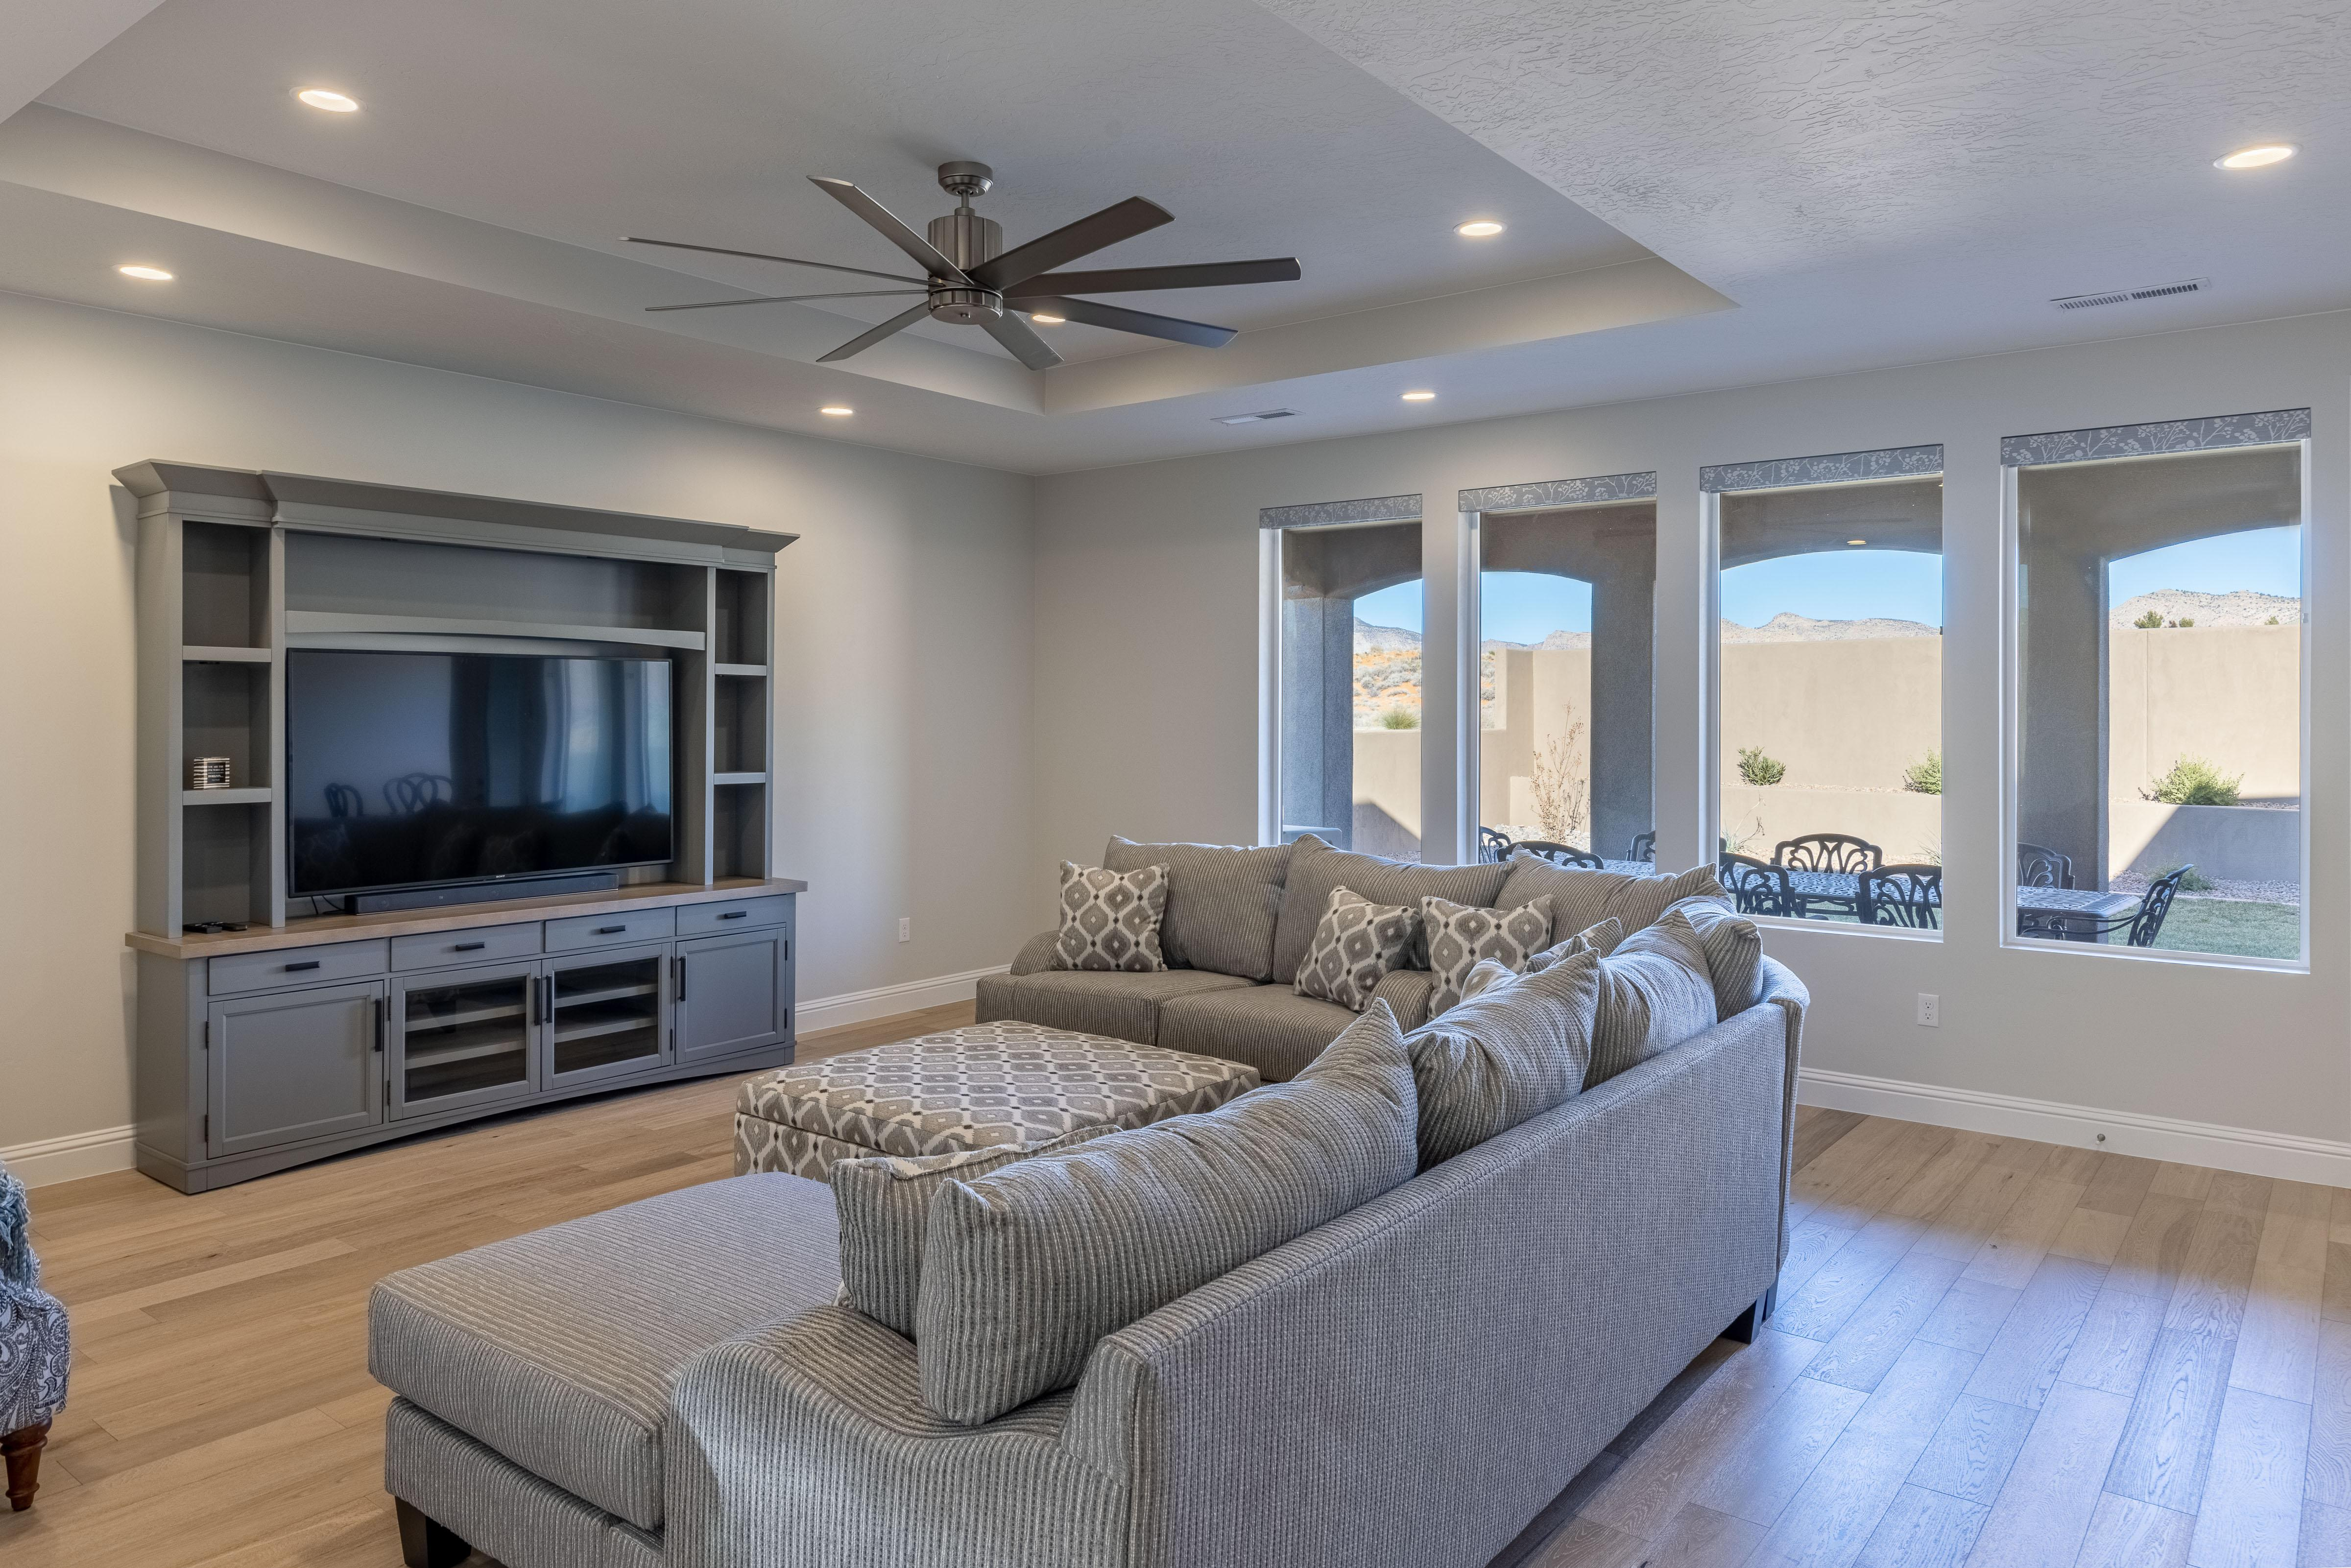 The living room is conveniently adjacent to the kitchen. There is also access to the back patio which has a BBQ grille suitable for all your favorite BBQ dishes.